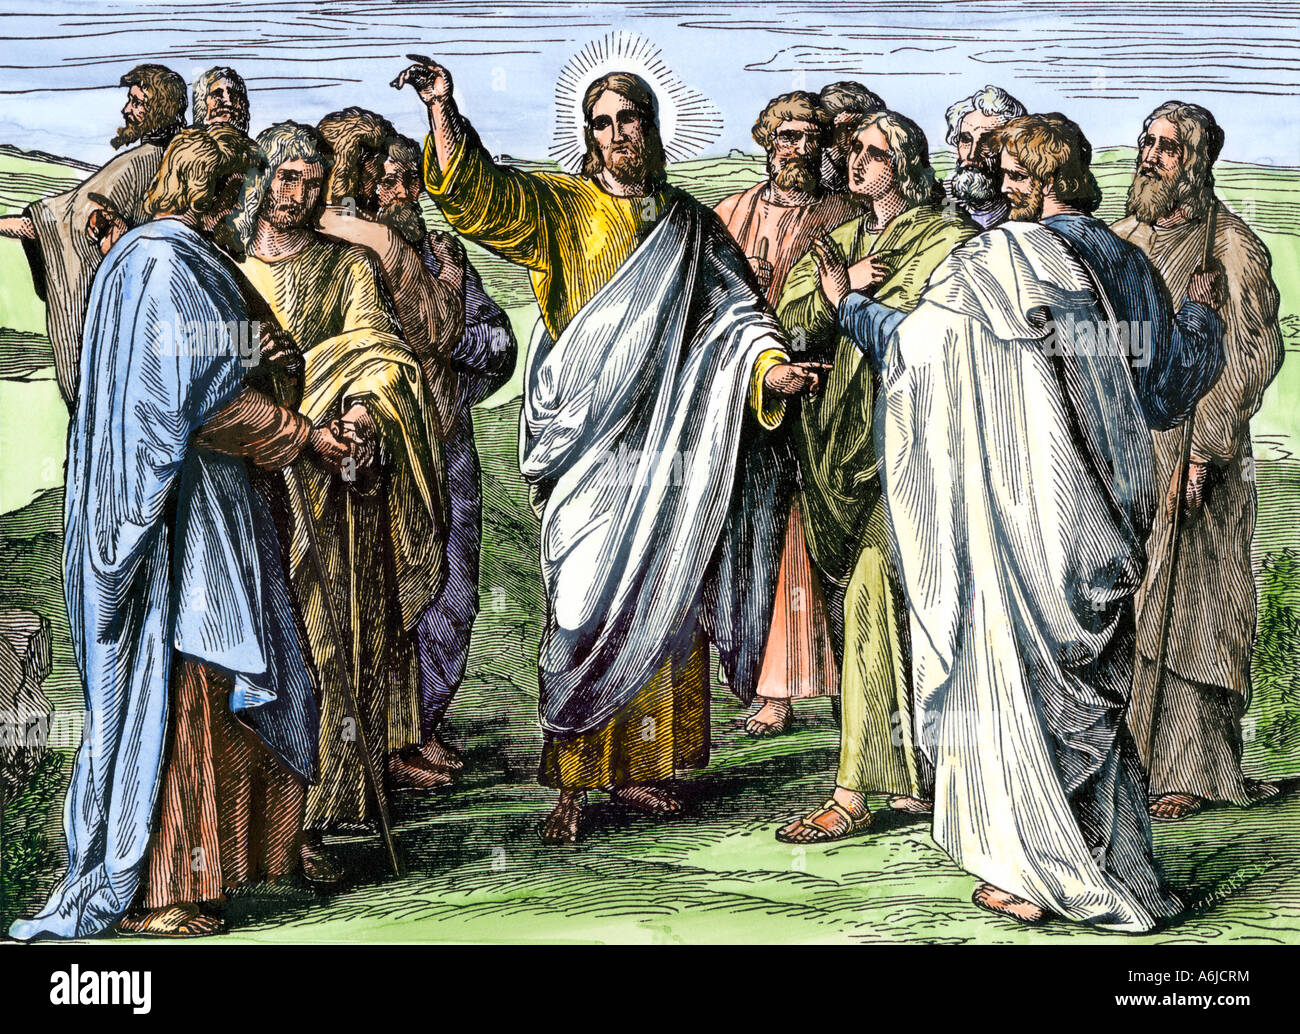 Jesus addressing the Apostles after Resurrection. Hand-colored woodcut - Stock Image